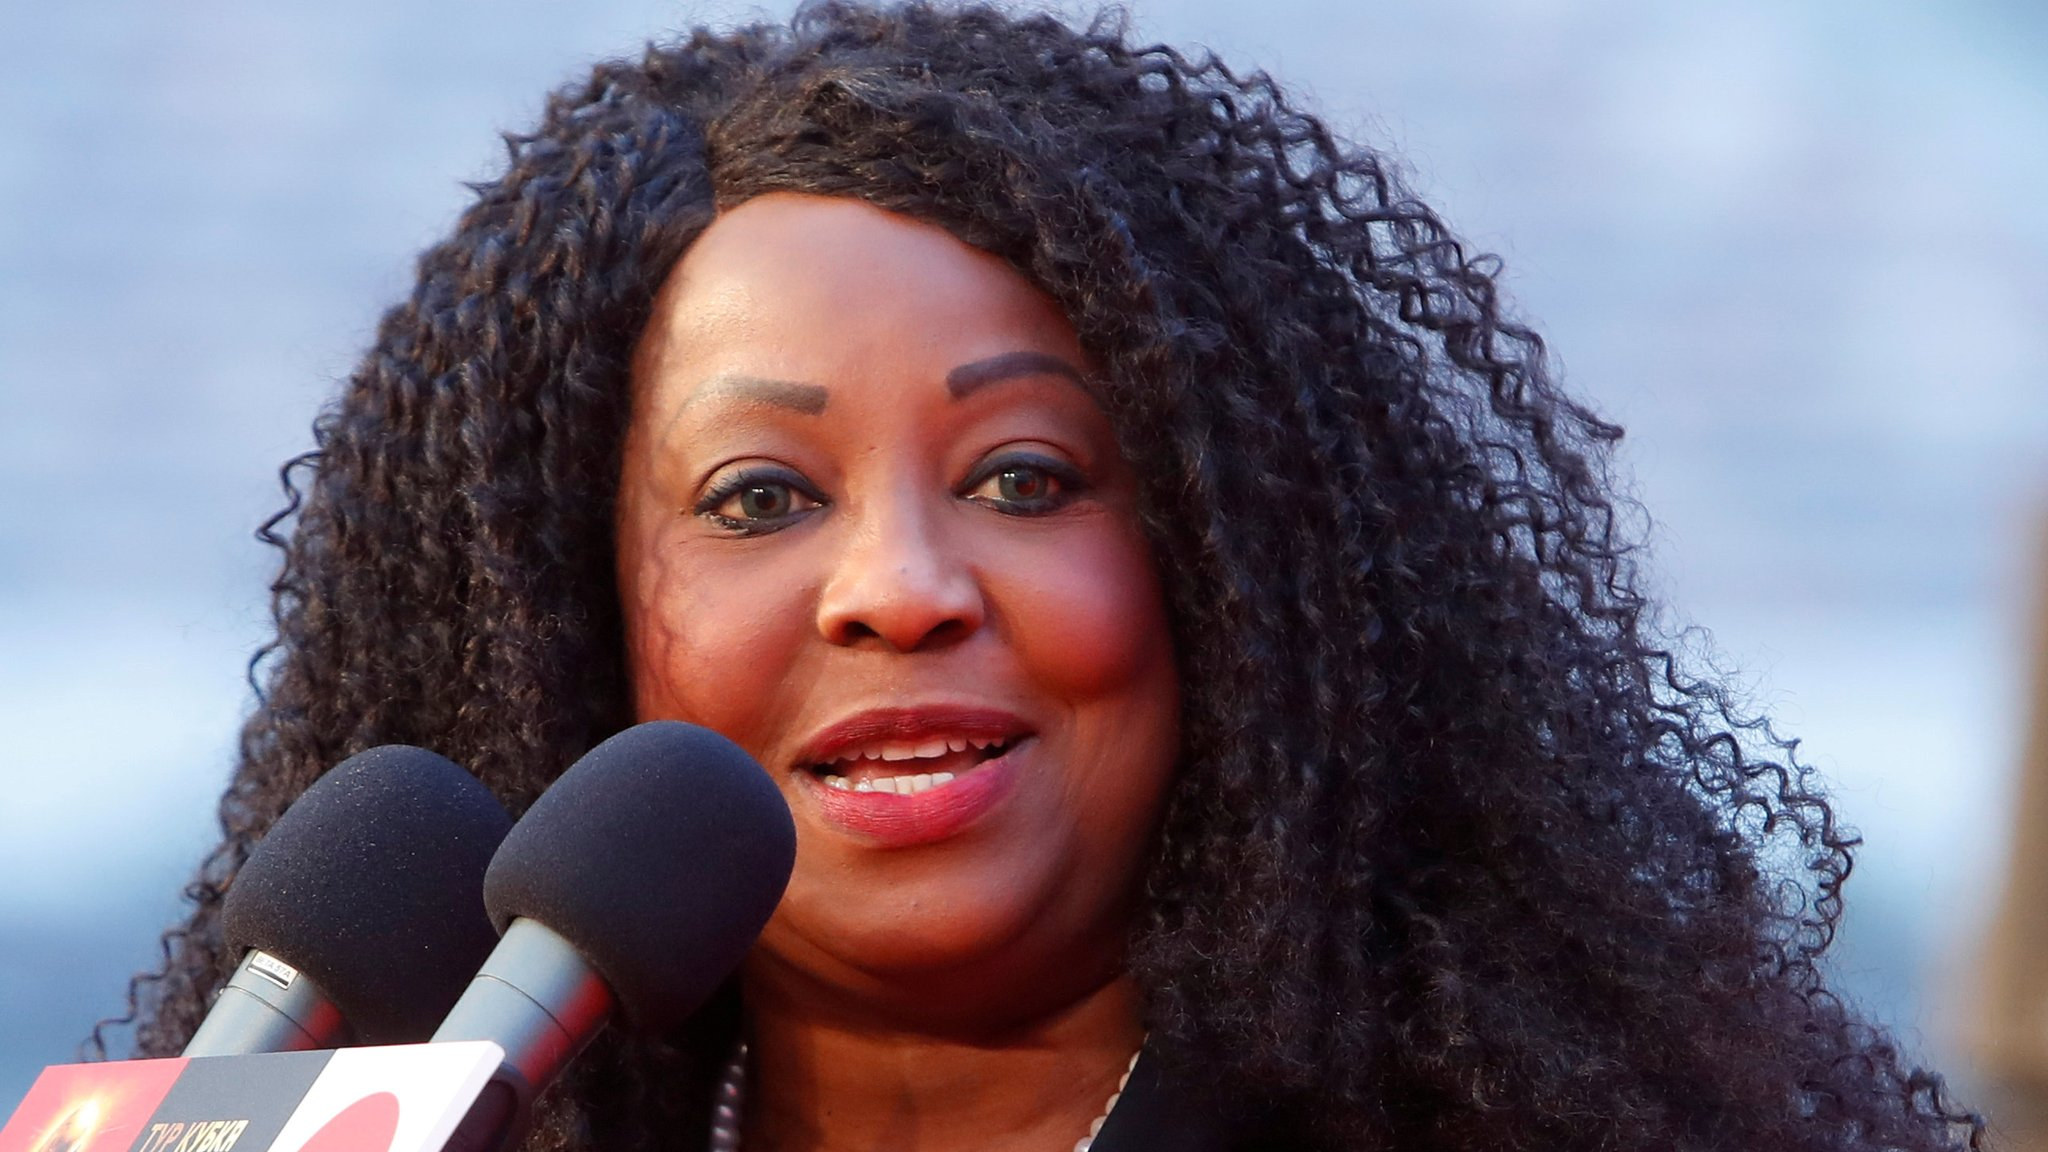 Fatma Samoura: 'Some don't think a black woman should be leading Fifa'